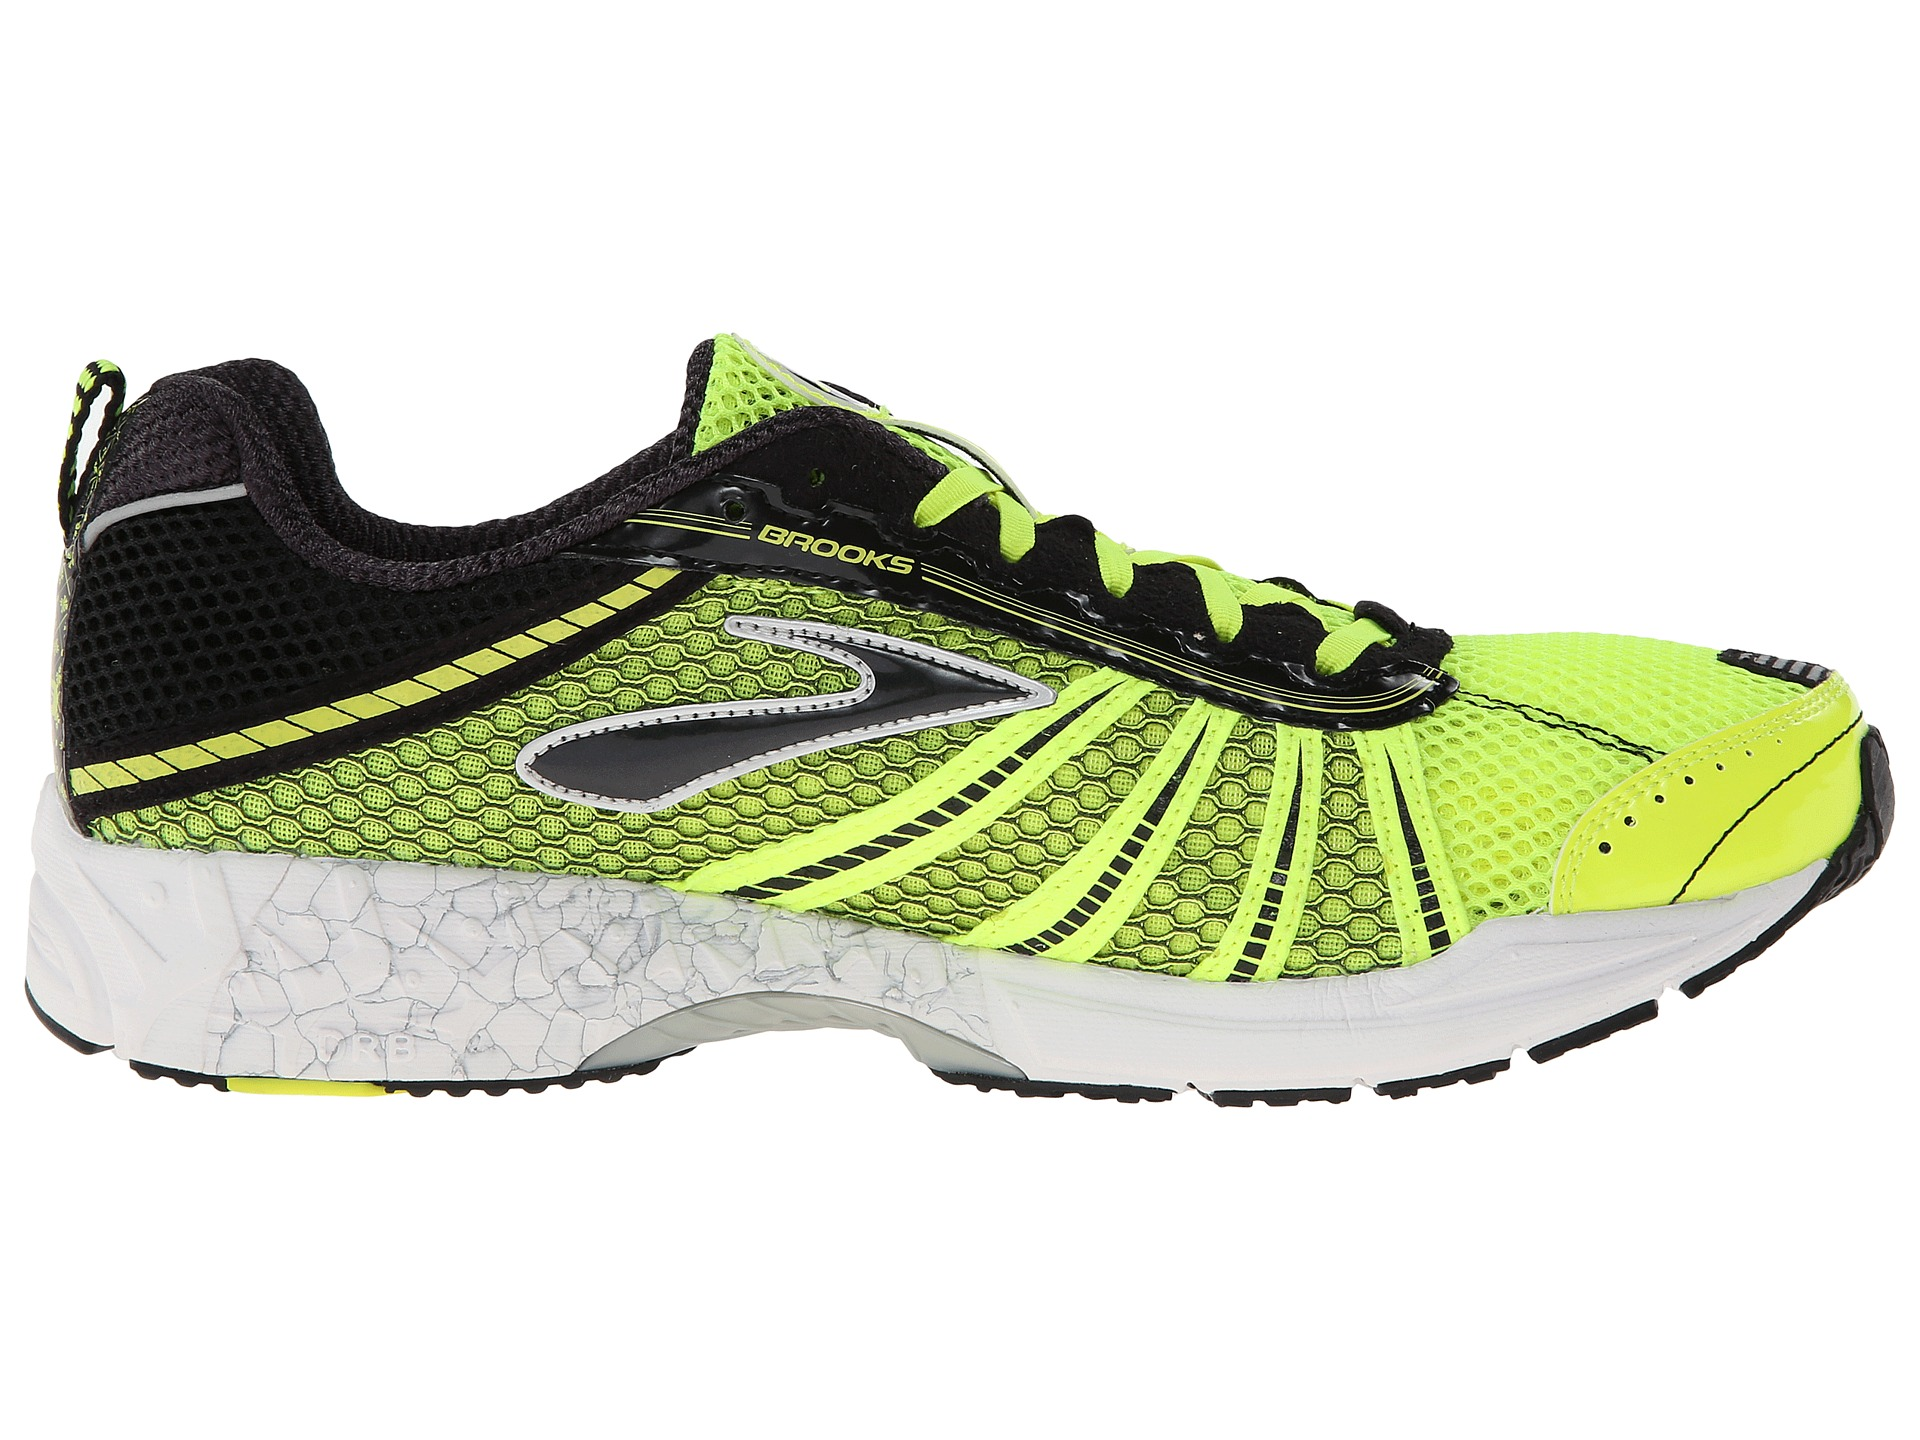 08284ab4b7a7 The latest shoe reviews by racewalkers!